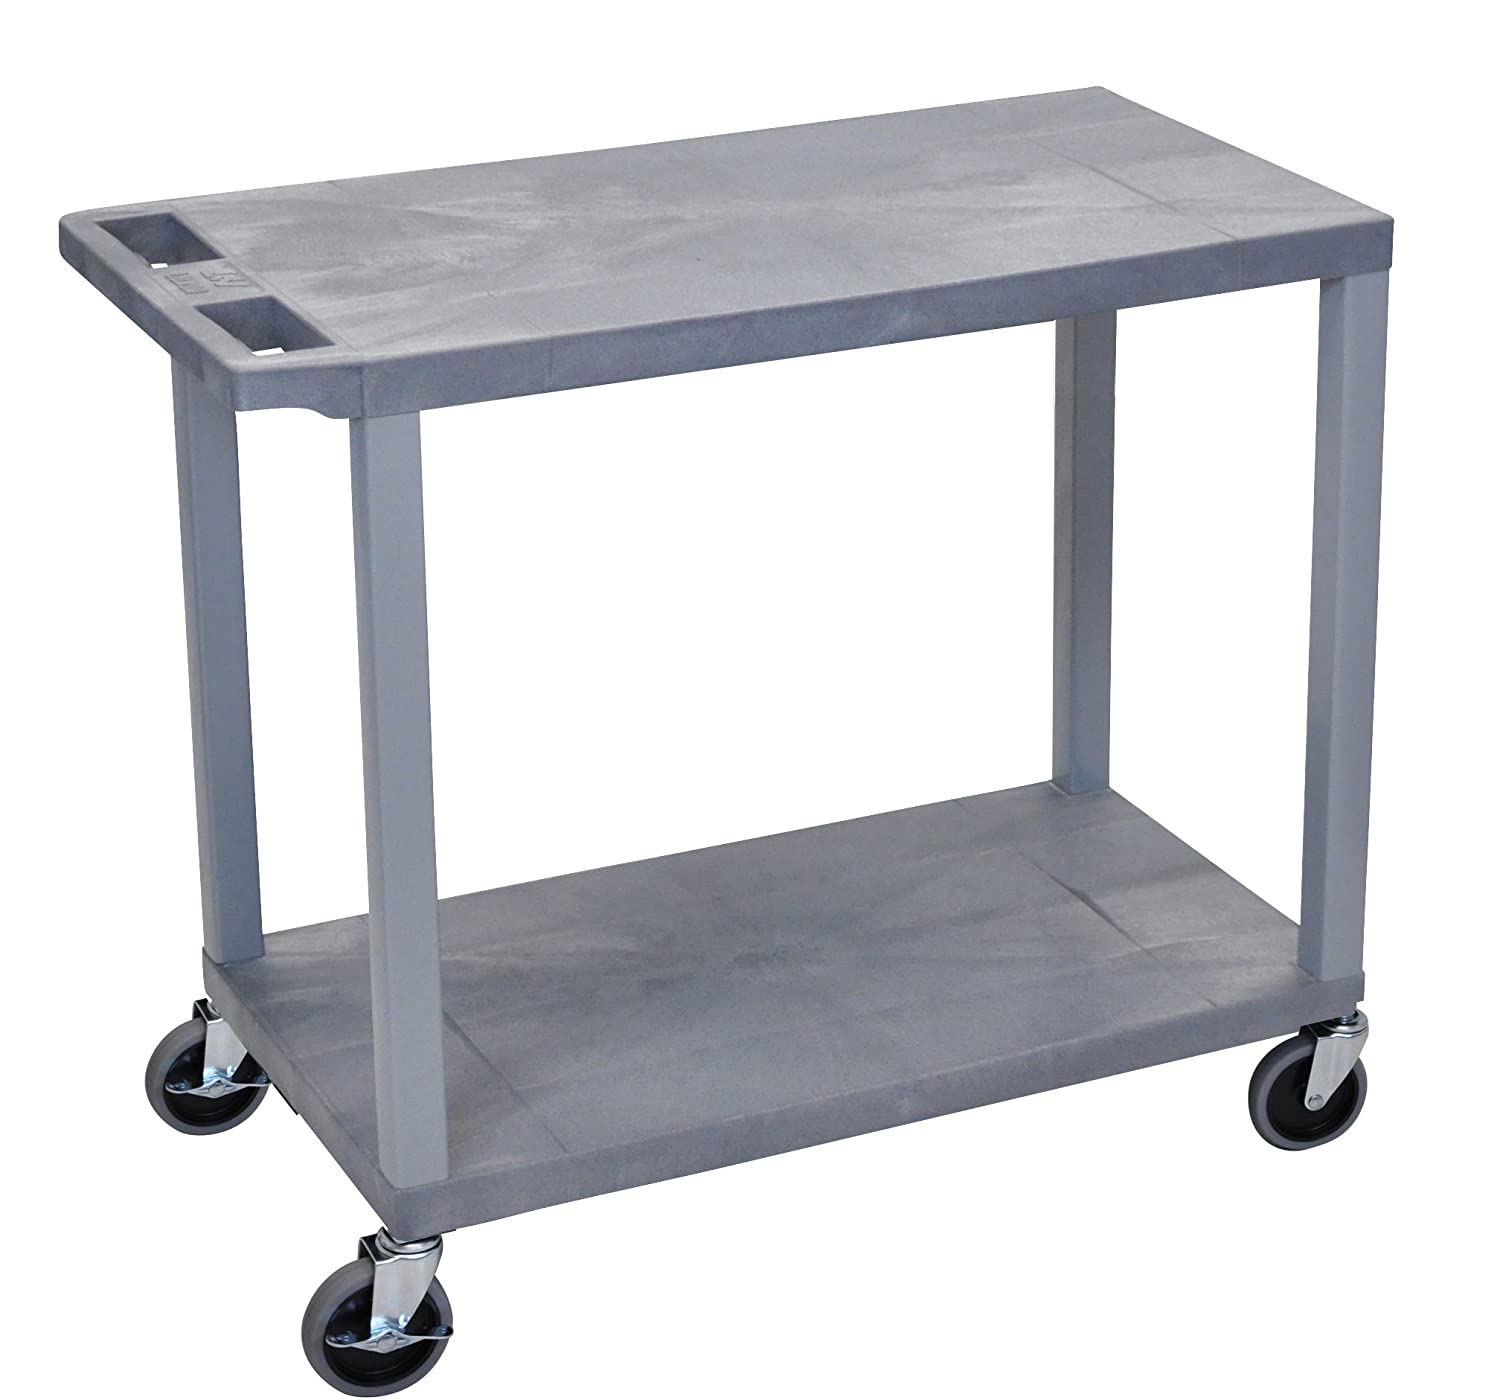 LUXOR EC22-G Cart with 2 Flat Shelves, 18 x 32, Gray 18 x 32 LUXEC22-G